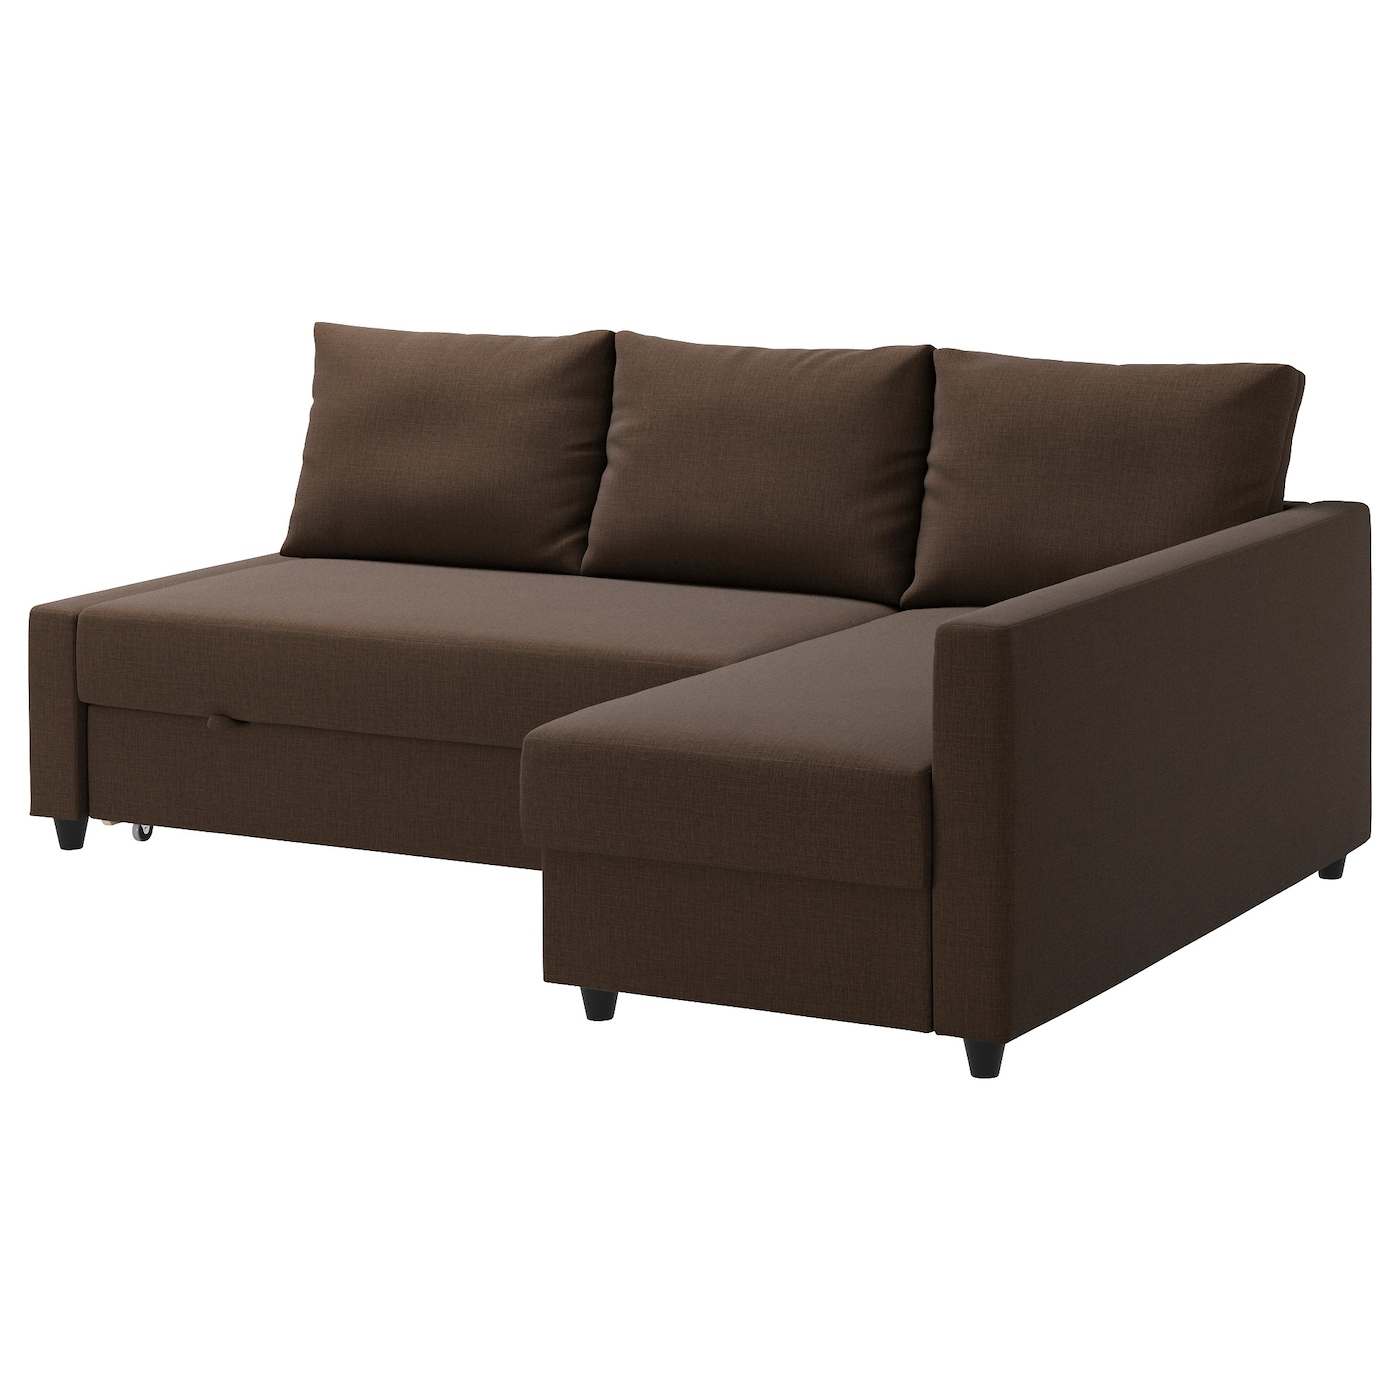 Friheten corner sofa bed with storage skiftebo brown ikea for Divano angolare ikea